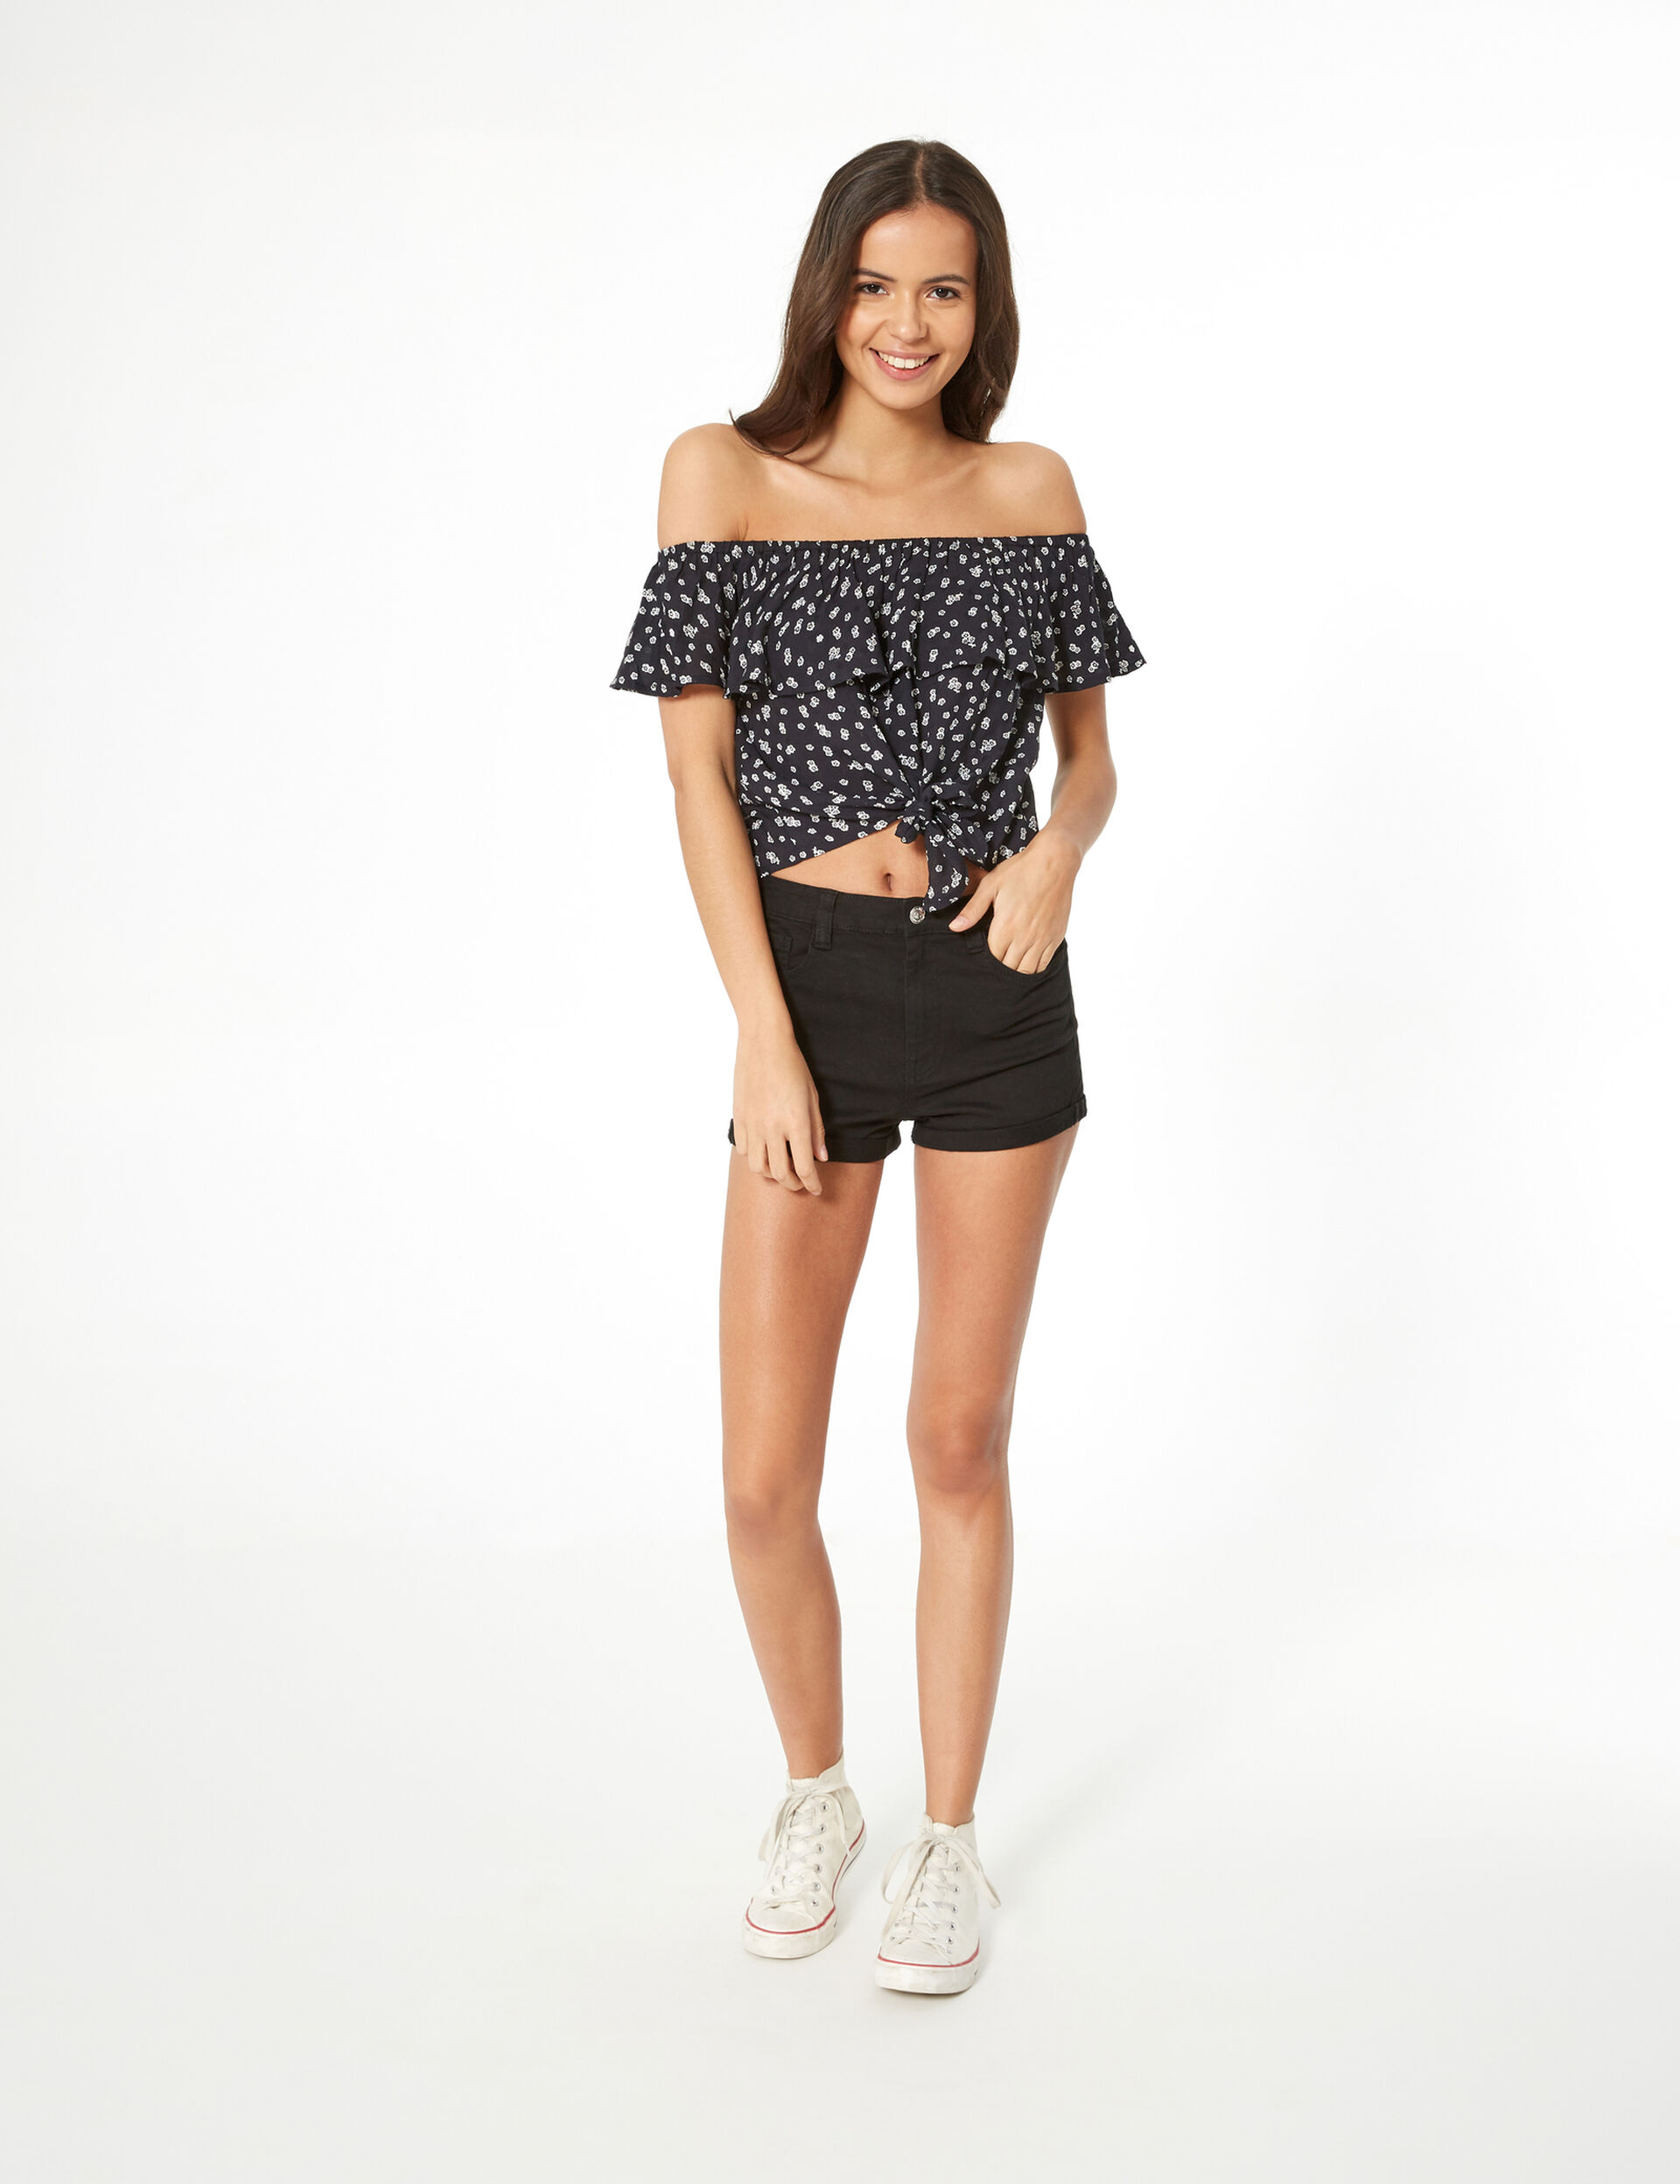 Black and white floral blouse with frill detail